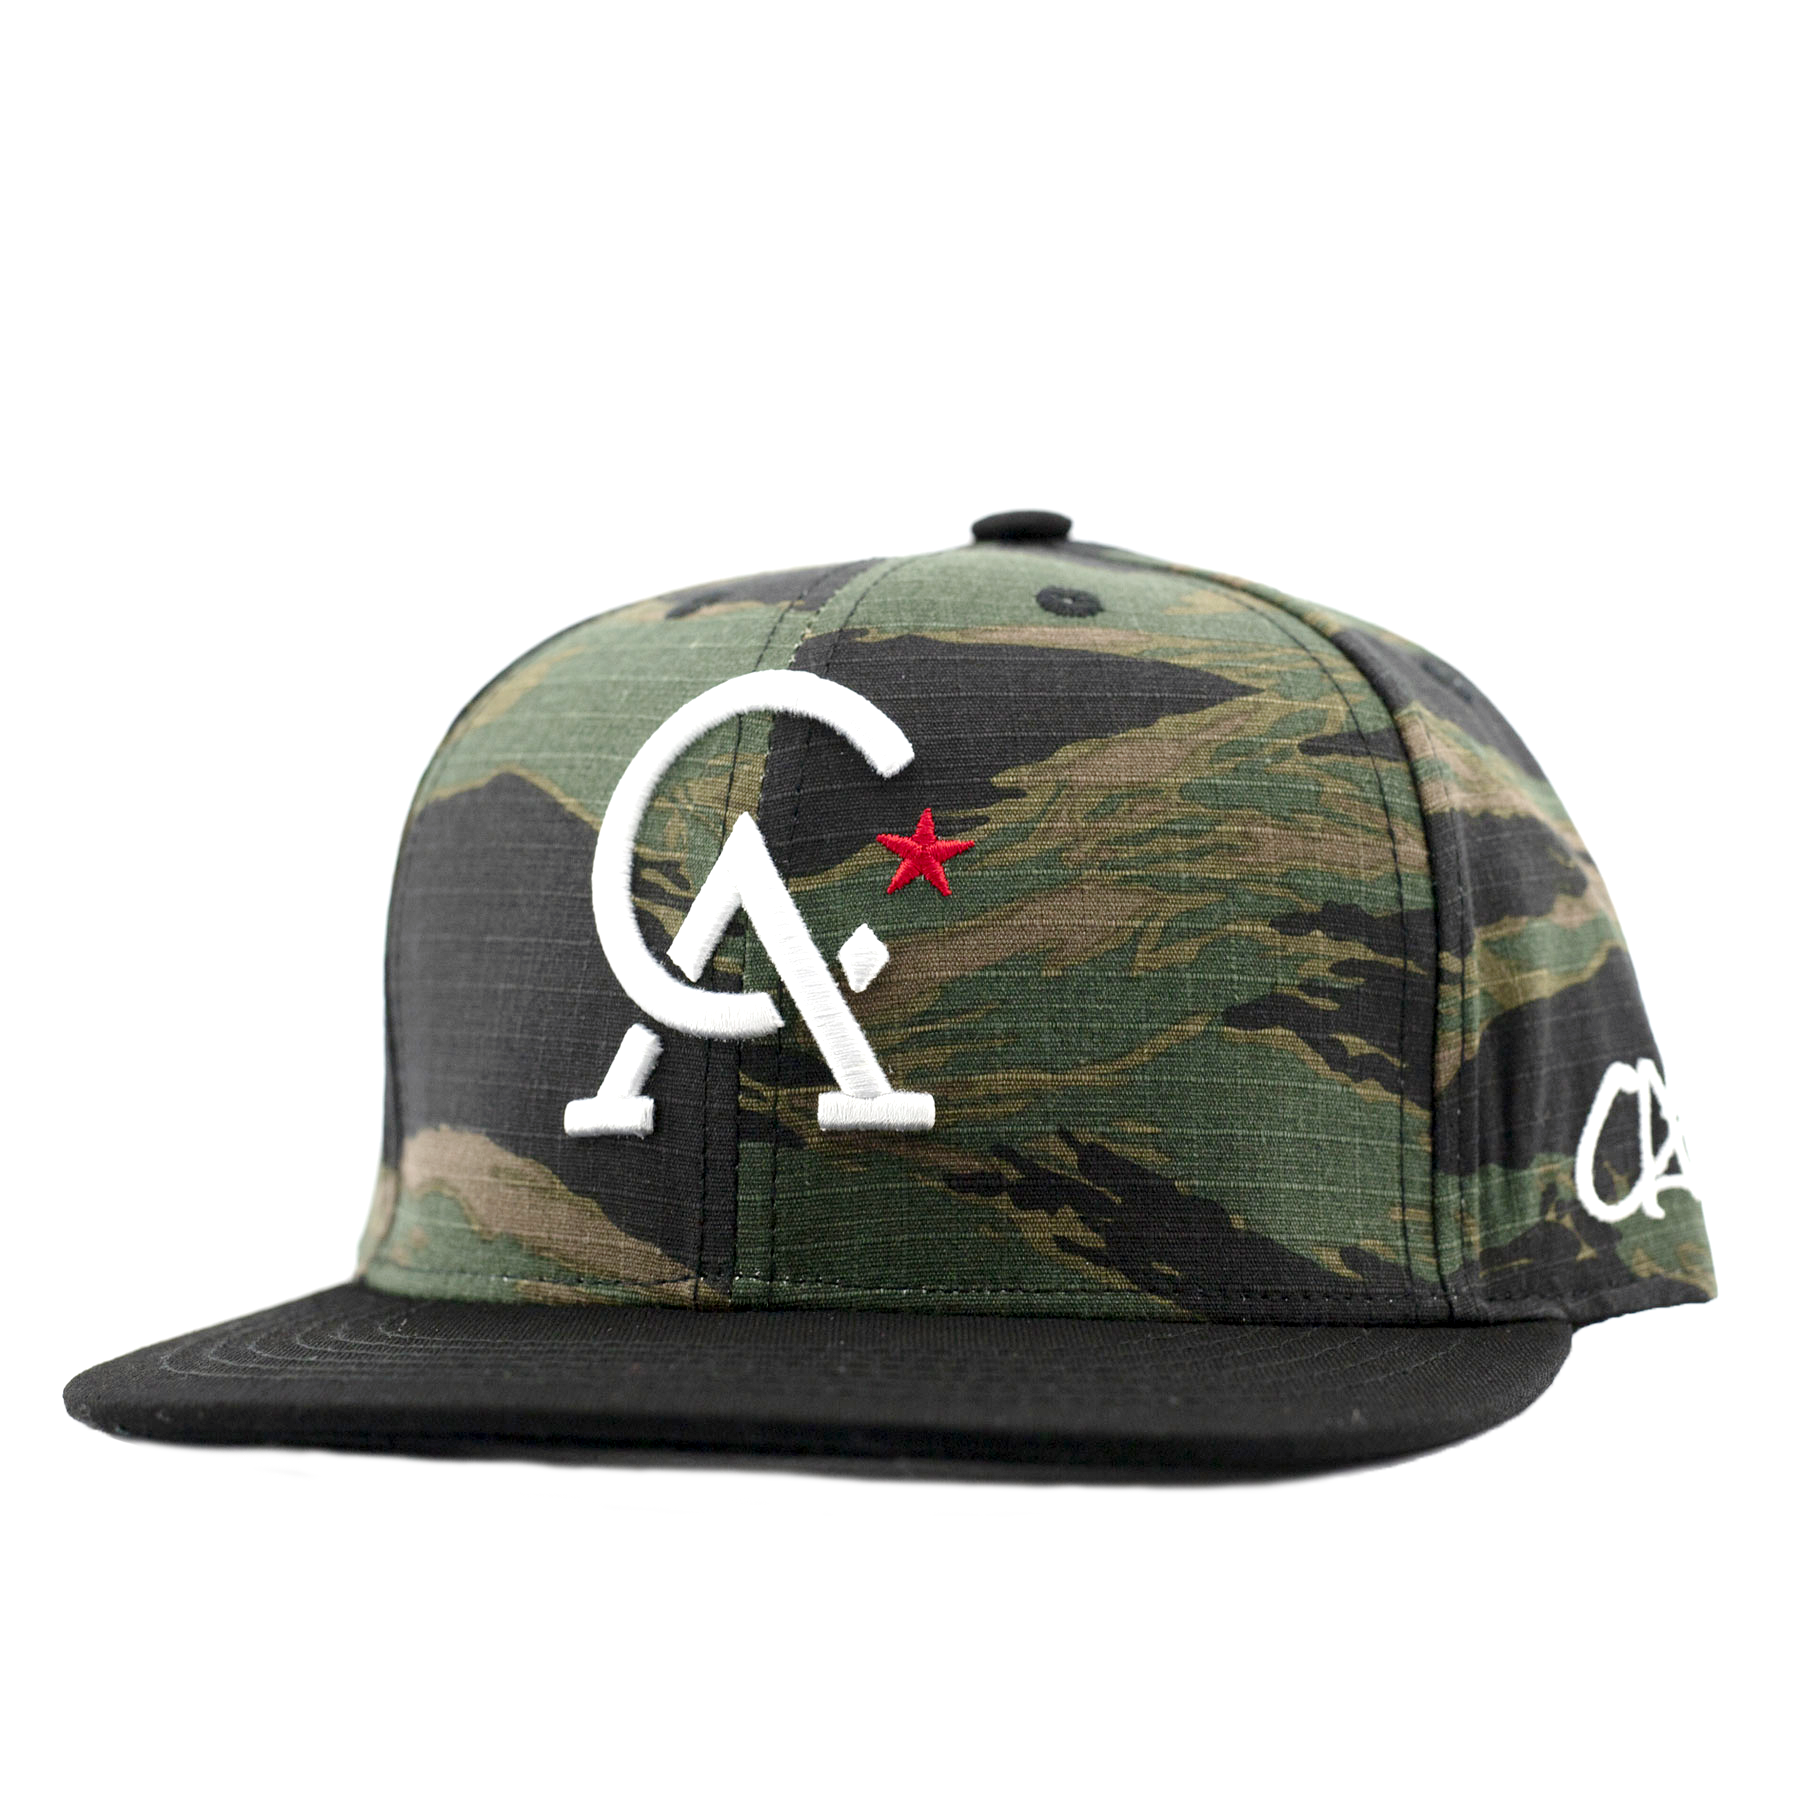 Initial Cal Tiger Camo Snapback by Calibis Clothing